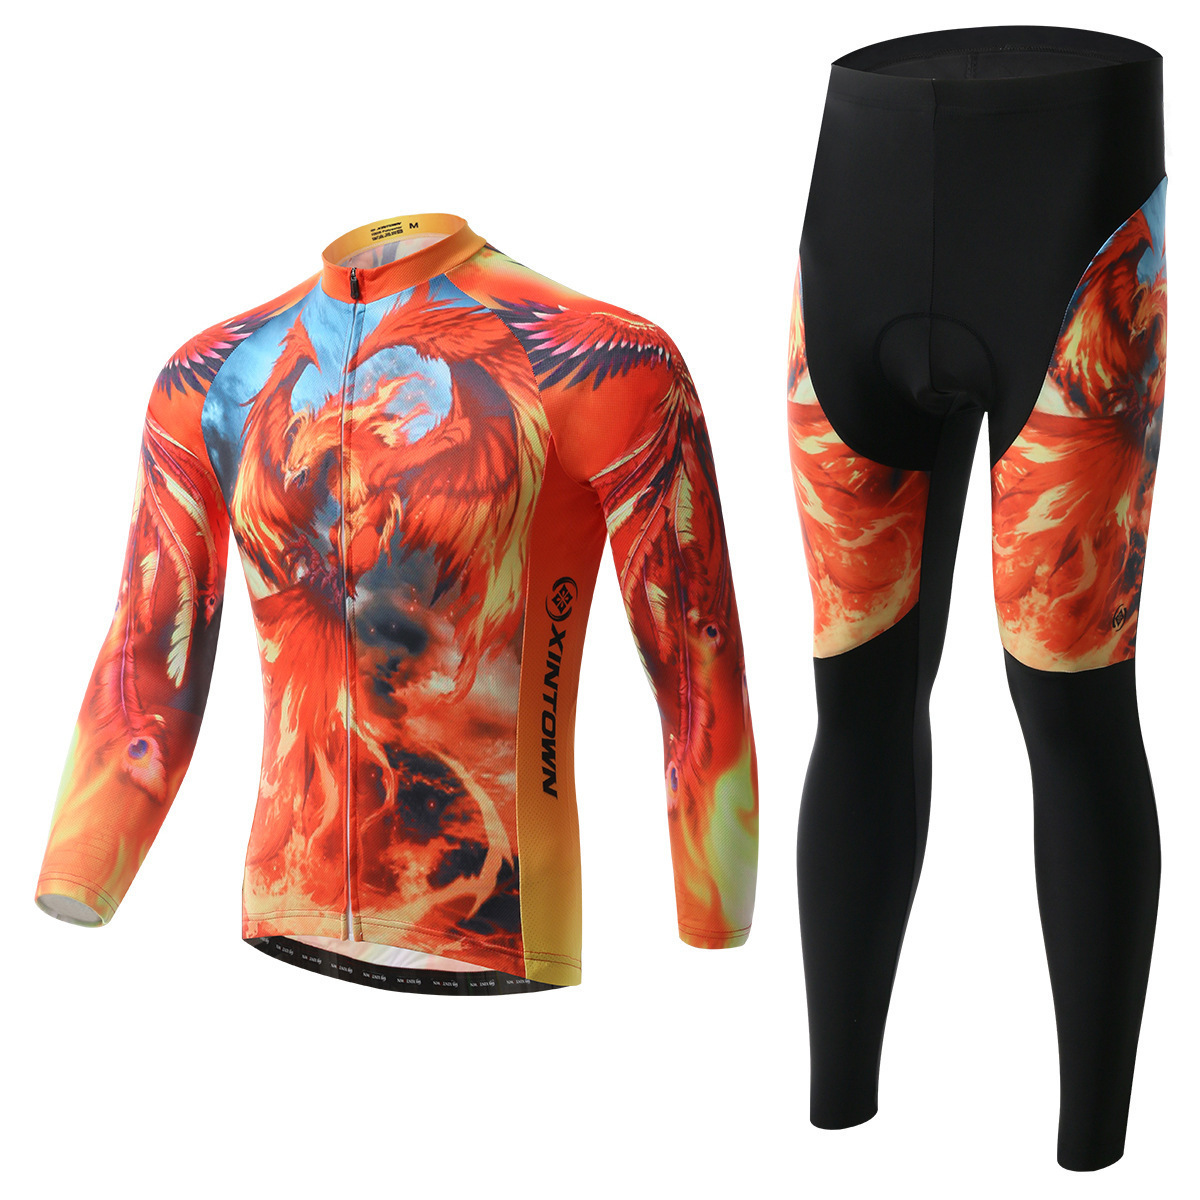 XINTOWN Spring Autumn Cycling Jersey Set Long Sleeve 3d Gel Padded Sets Bike Clothing MTB Protective Wear Cycling Cycle Clothes xintown new 2018 spring cycling jersey set long sleeve 3d gel padded sets bike clothing mtb protective wear cycling clothes sets